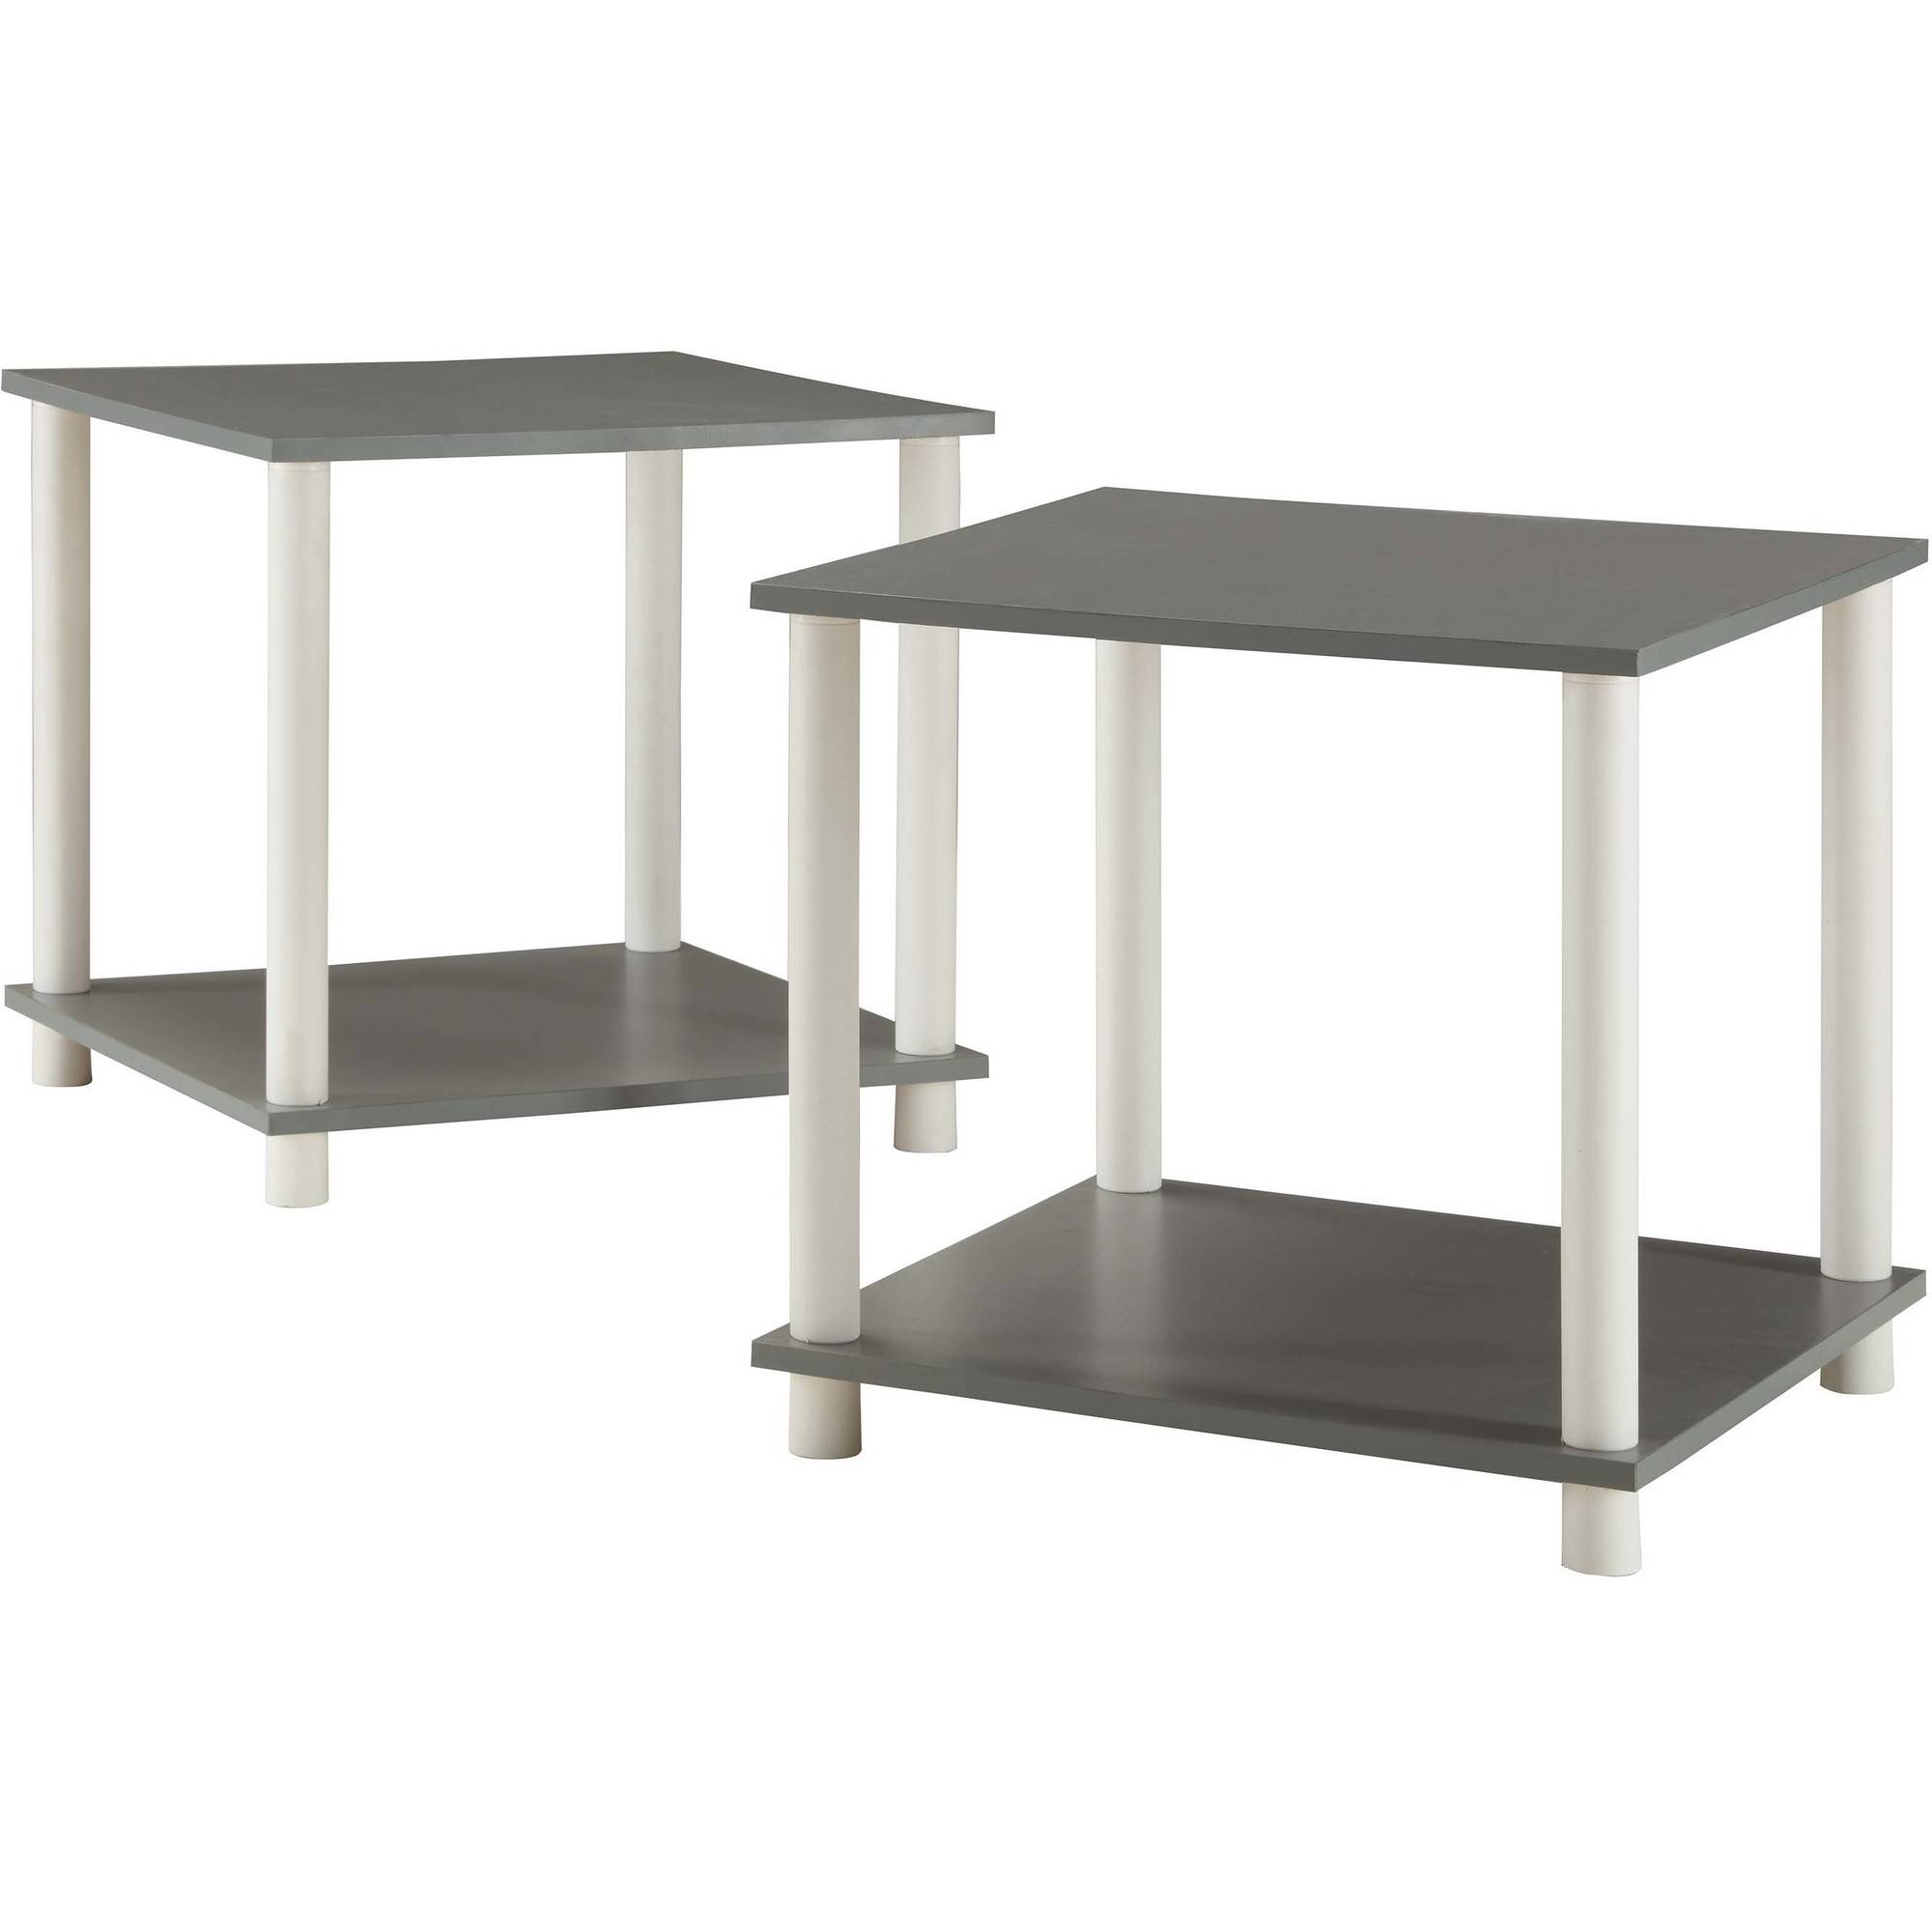 size 40 6dde6 87ad9 Mainstays No Tools 2-Pack End Table, Solid Black - Walmart.com